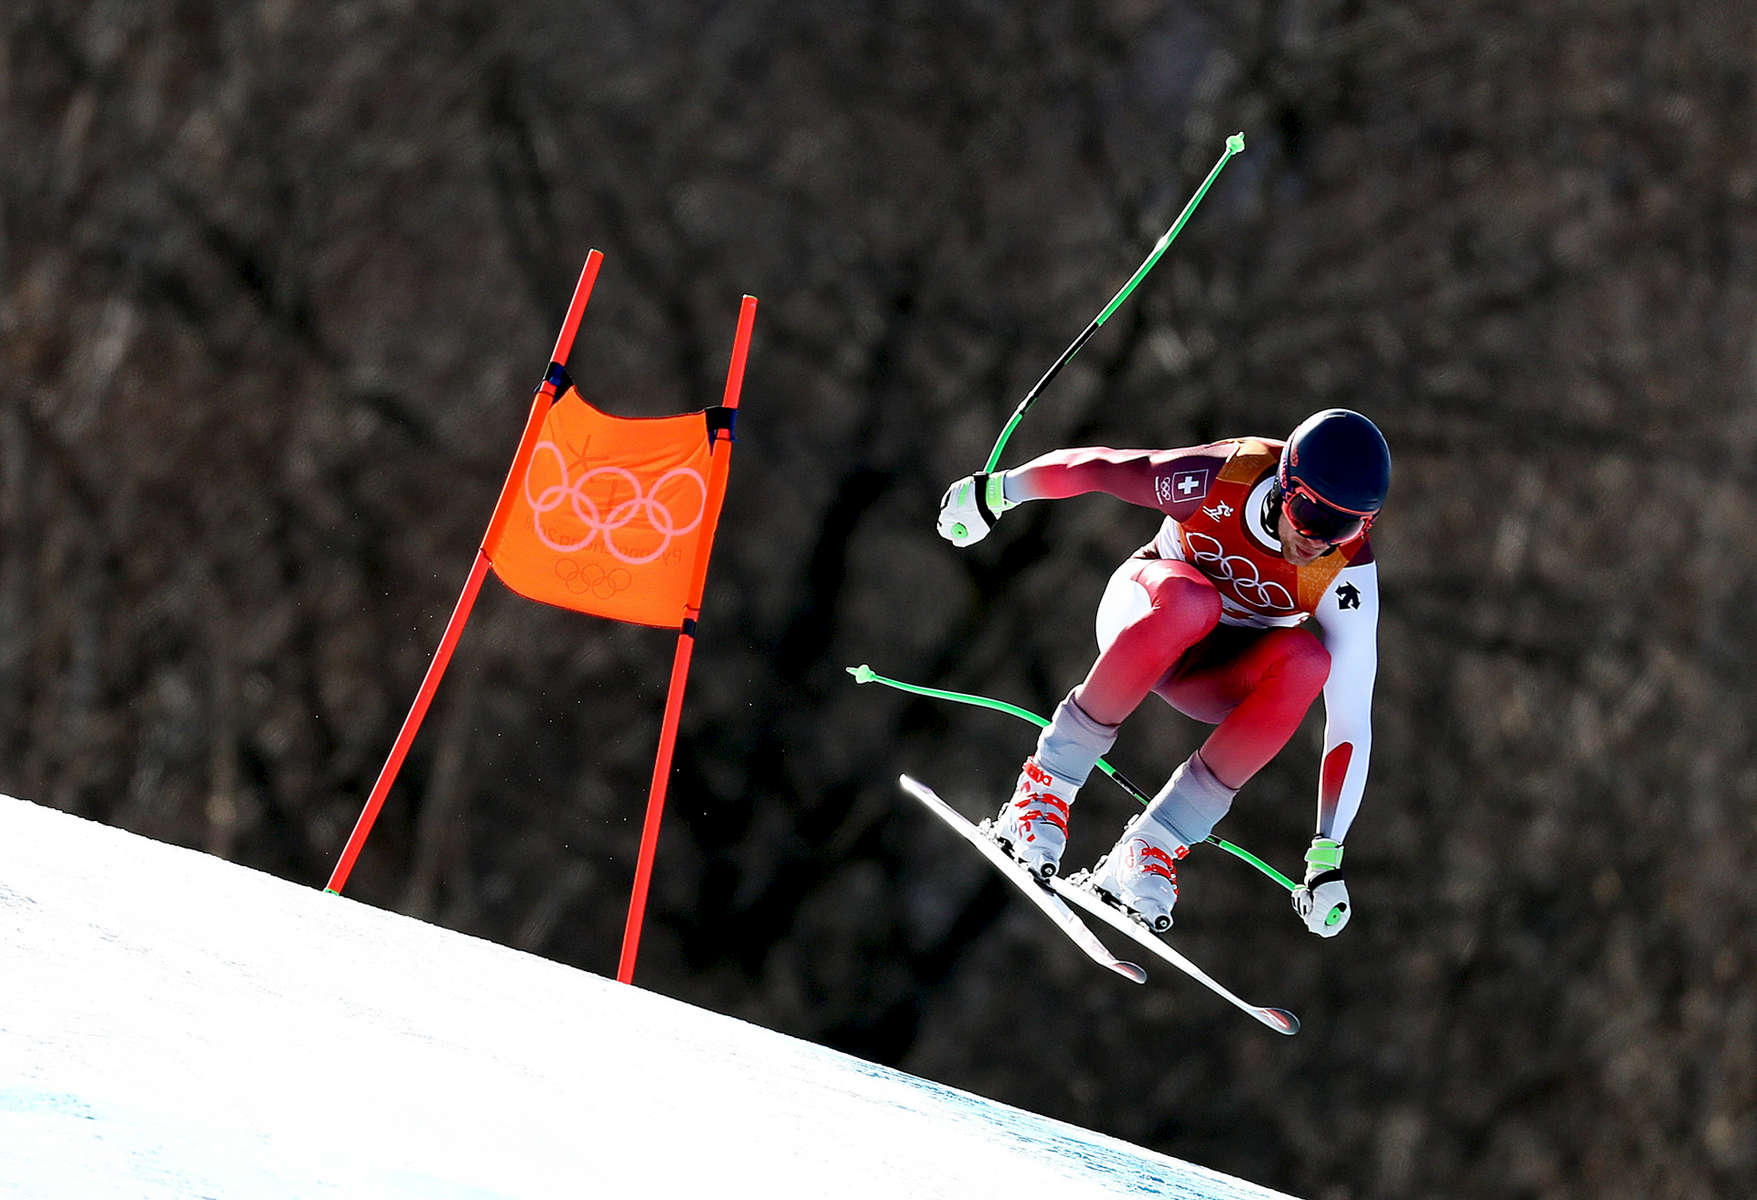 Marc Gisin of Switzerland makes a run during the Men's Downhill on day six of the PyeongChang 2018 Winter Olympic Games at Jeongseon Alpine Centre on February 15, 2018 in Pyeongchang-gun, South Korea.